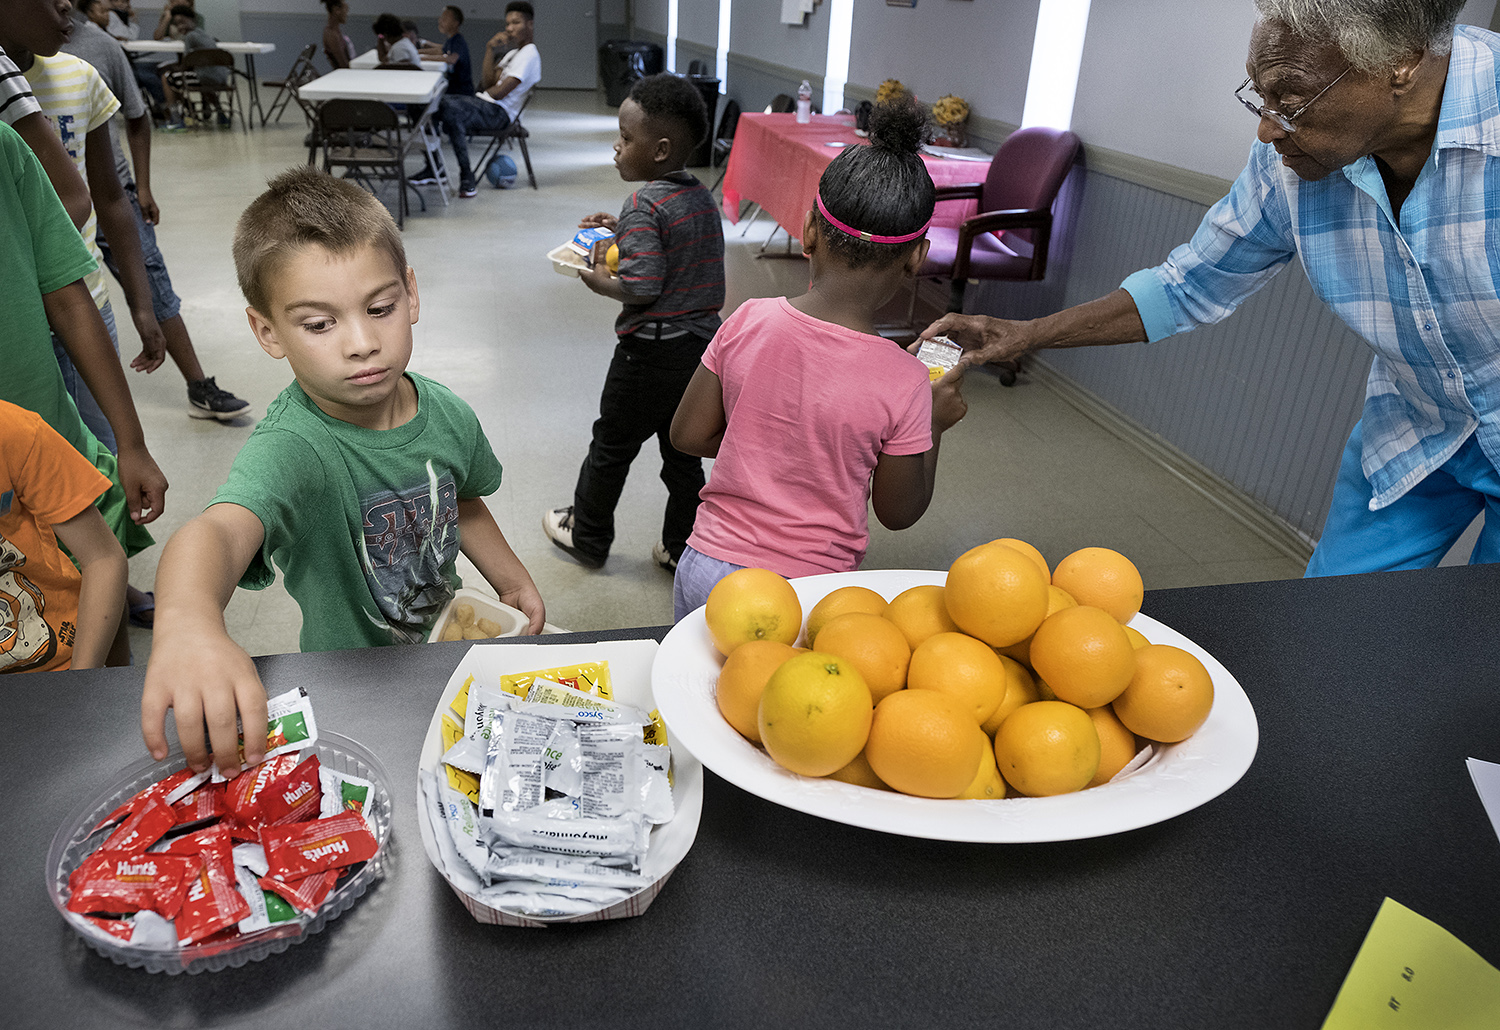 Clara Crawford puts a milk carton on 6 -year-old Jaylynn Uniqe's plate as Ethan Smallwood reaches for ketchup at the Fairview Community Center in Reklaw.